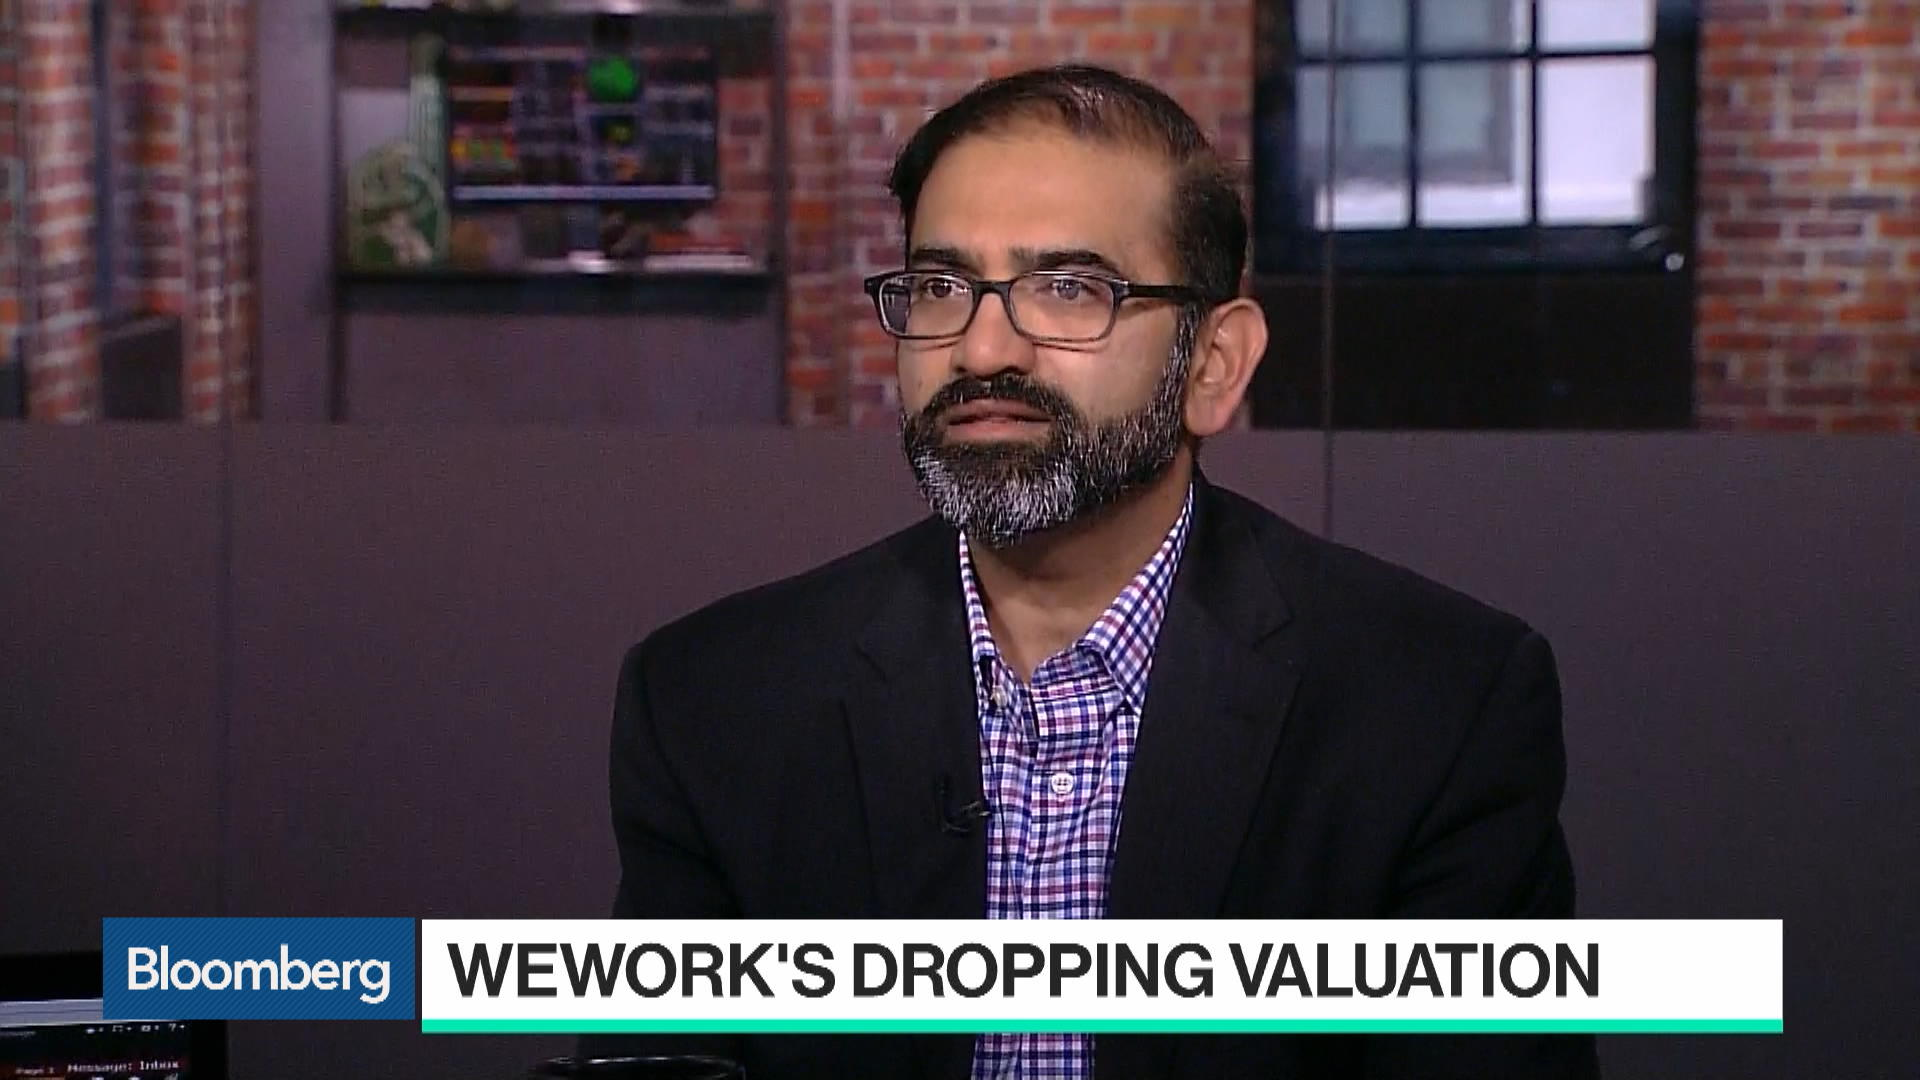 WeWork Cash Burn Is a Bigger Concern Than Valuation: Rohit Kulkarni